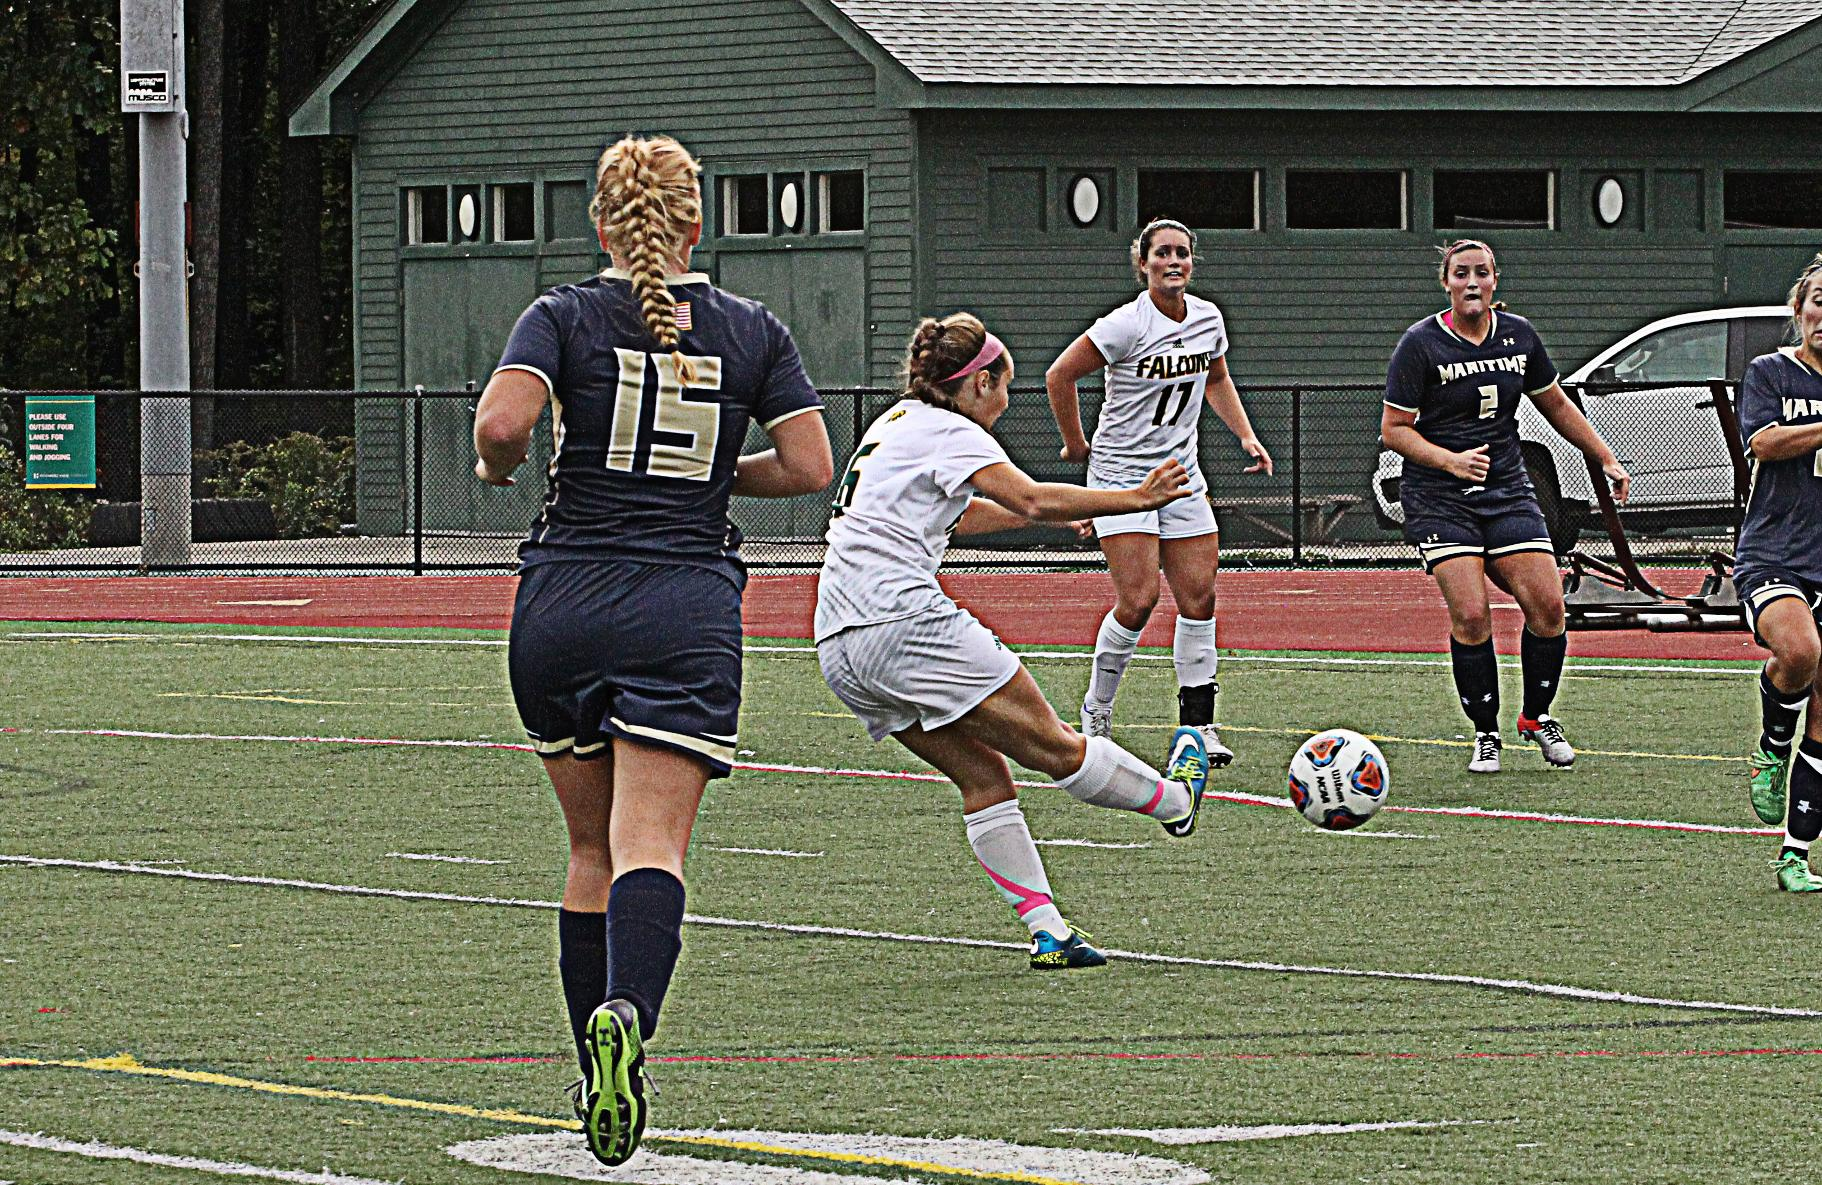 Fitchburg State Rebounds Over Mass. Maritime, 3-1